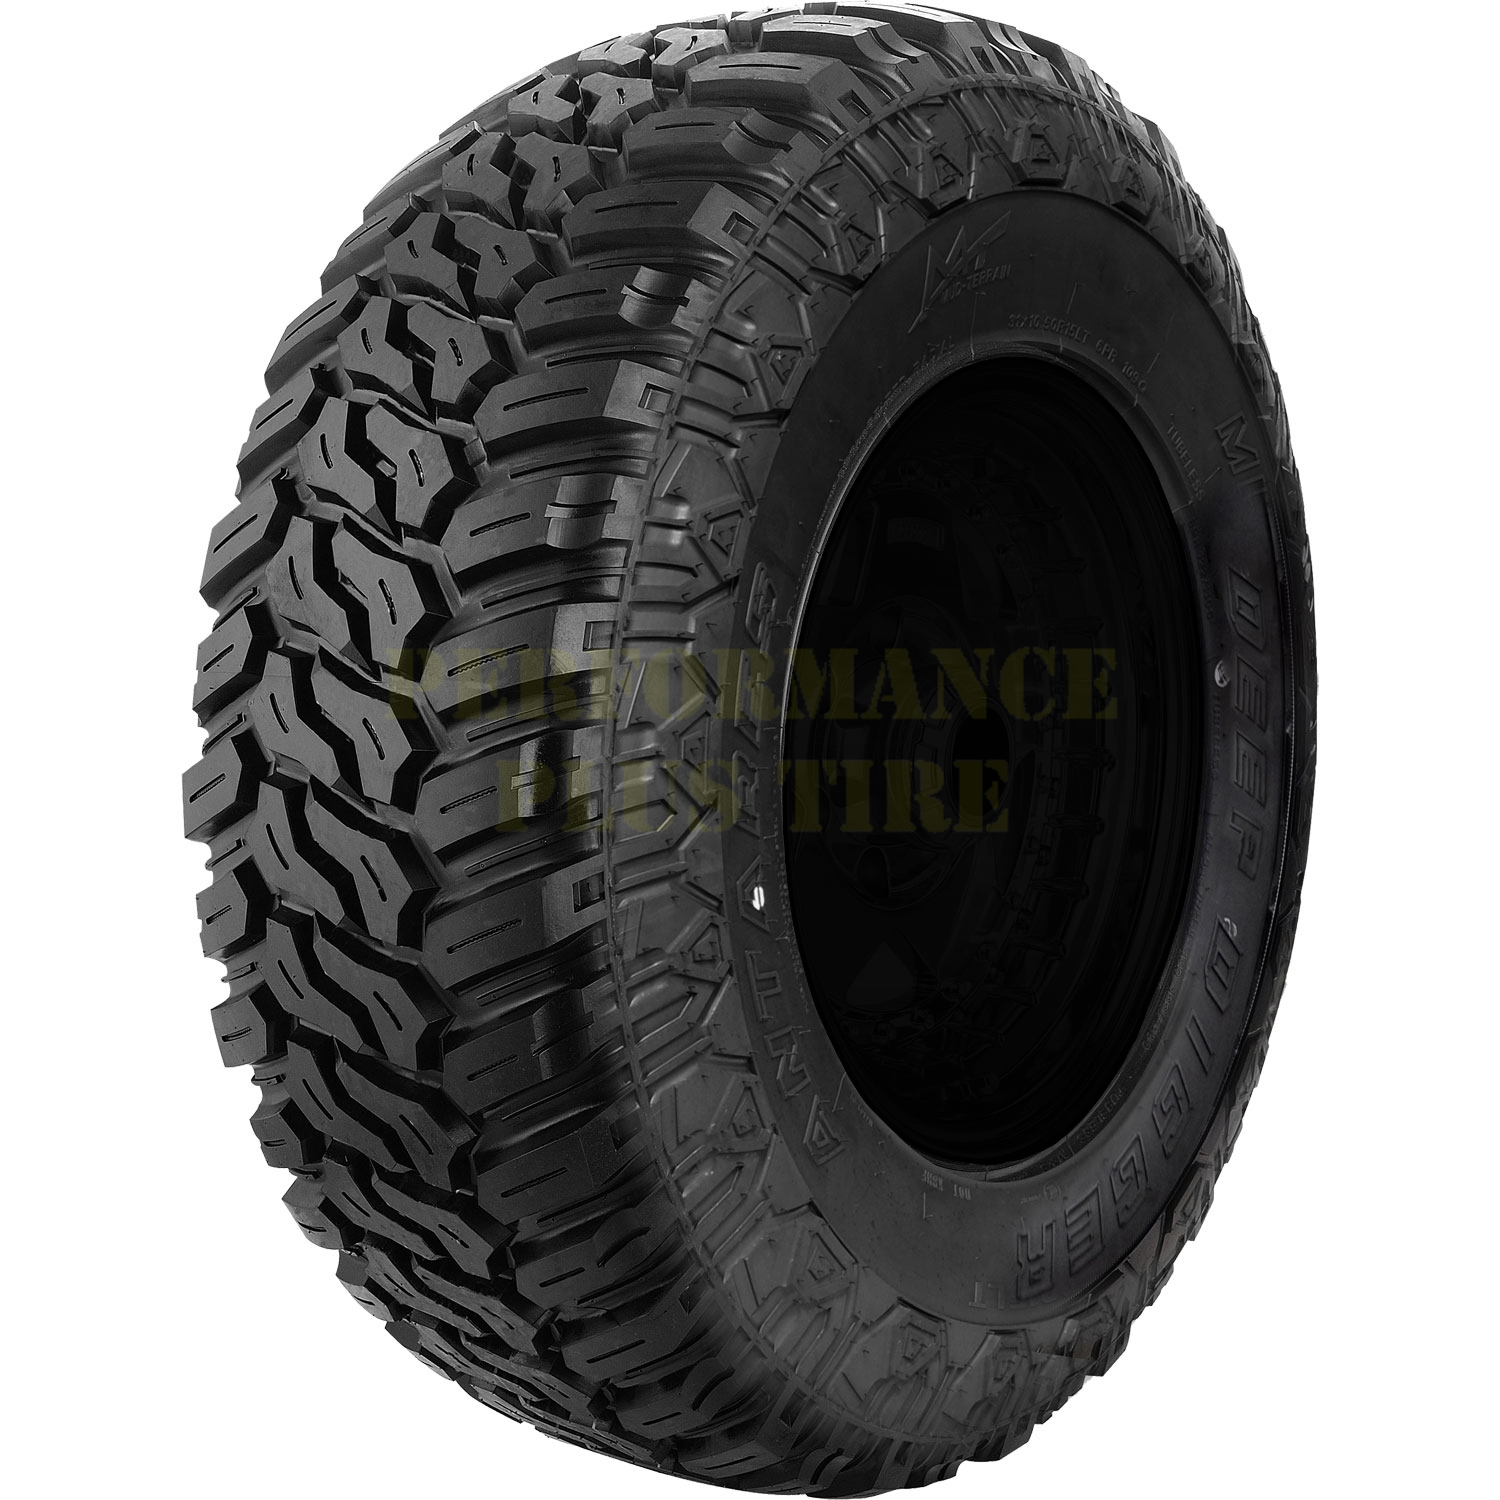 Antares Tires Deep Digger Light Truck/SUV Mud Terrain Tire - 35x12.50R17 121Q